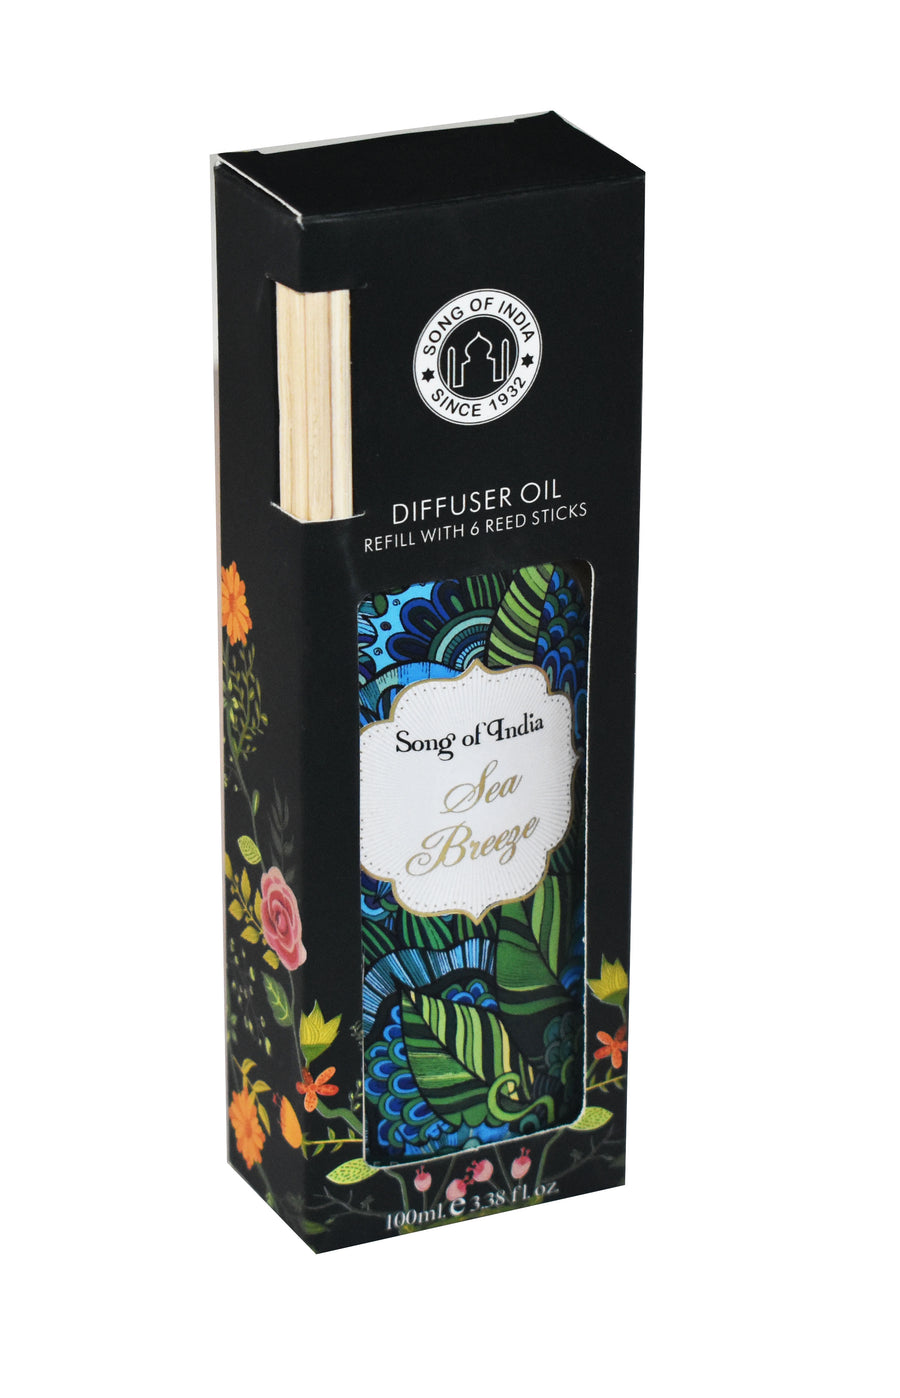 Song of India 100 ml Sea Breeze Little Pleasures Diffuser Oil